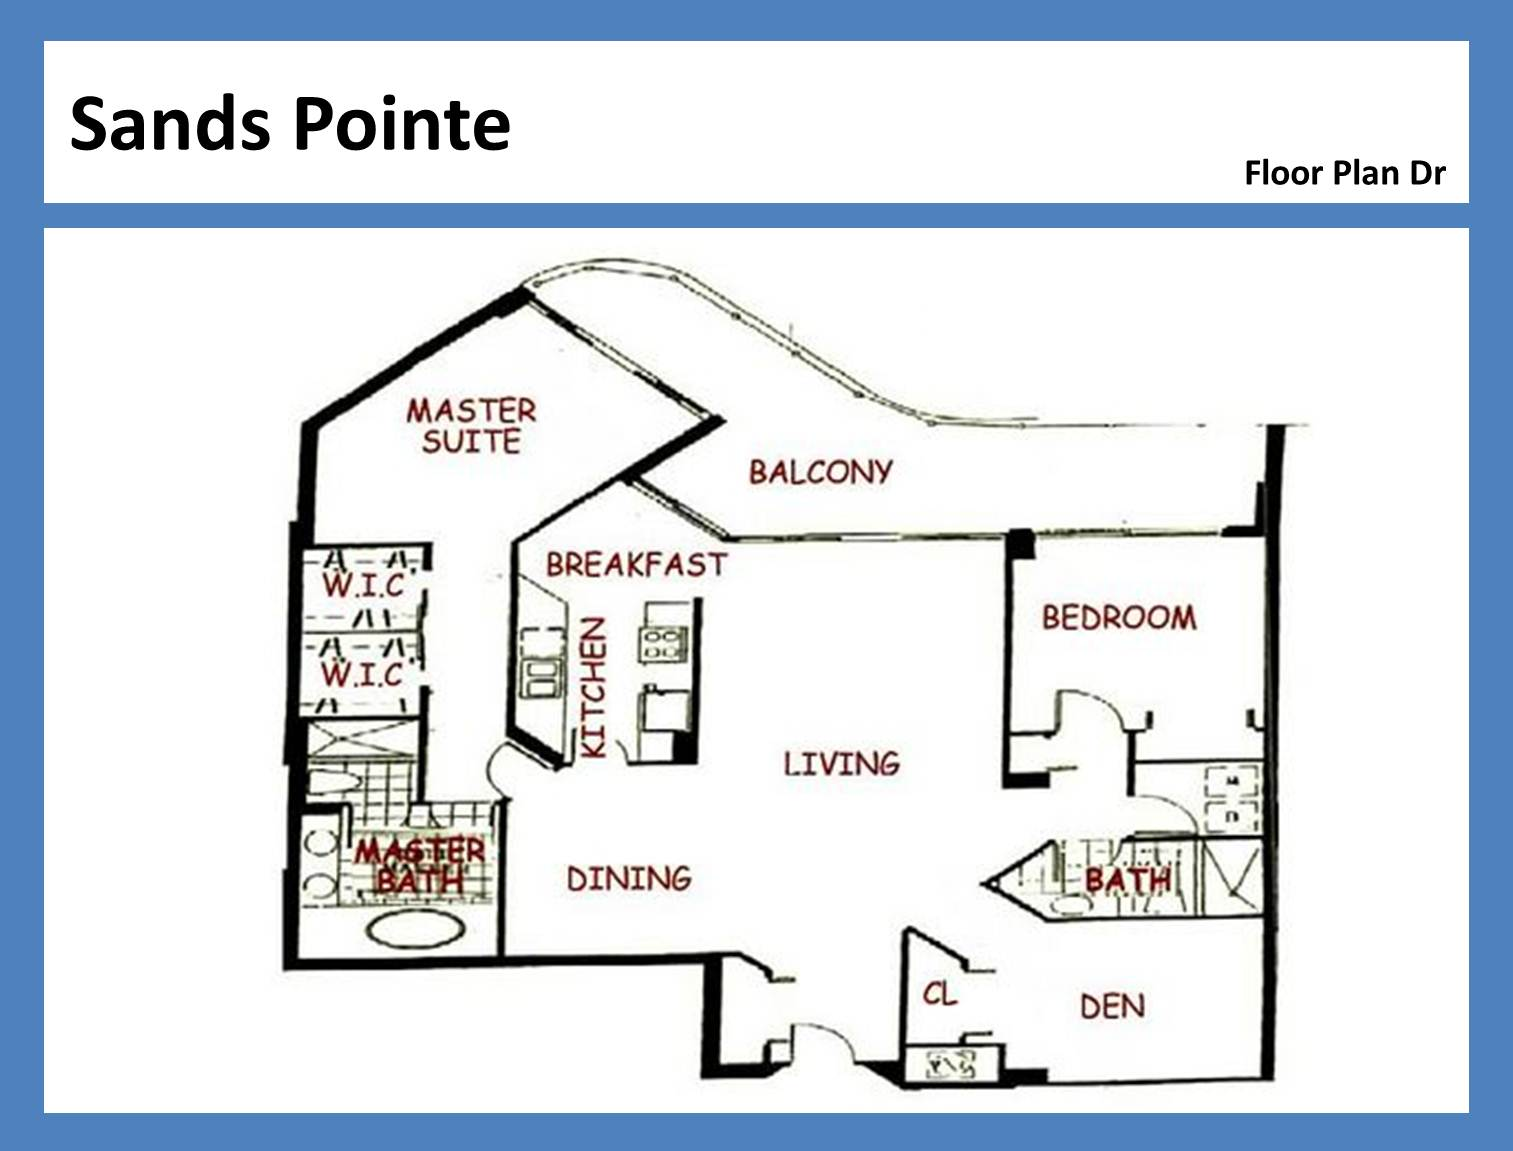 Sands Pointe - Floorplan 7